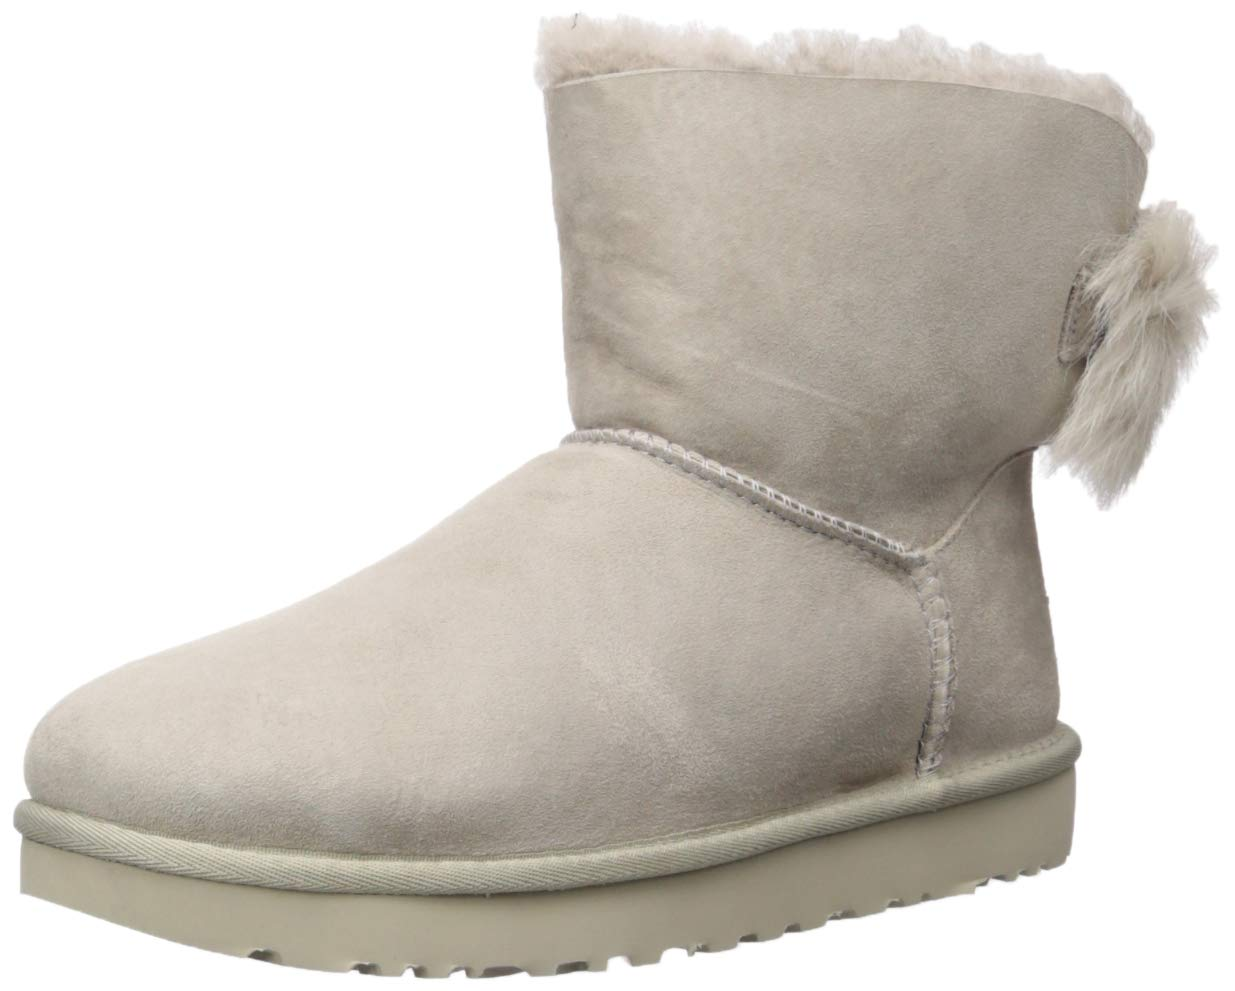 UGG Women's W Fluff Bow Mini Fashion Boot, Willow, 7 M US by UGG